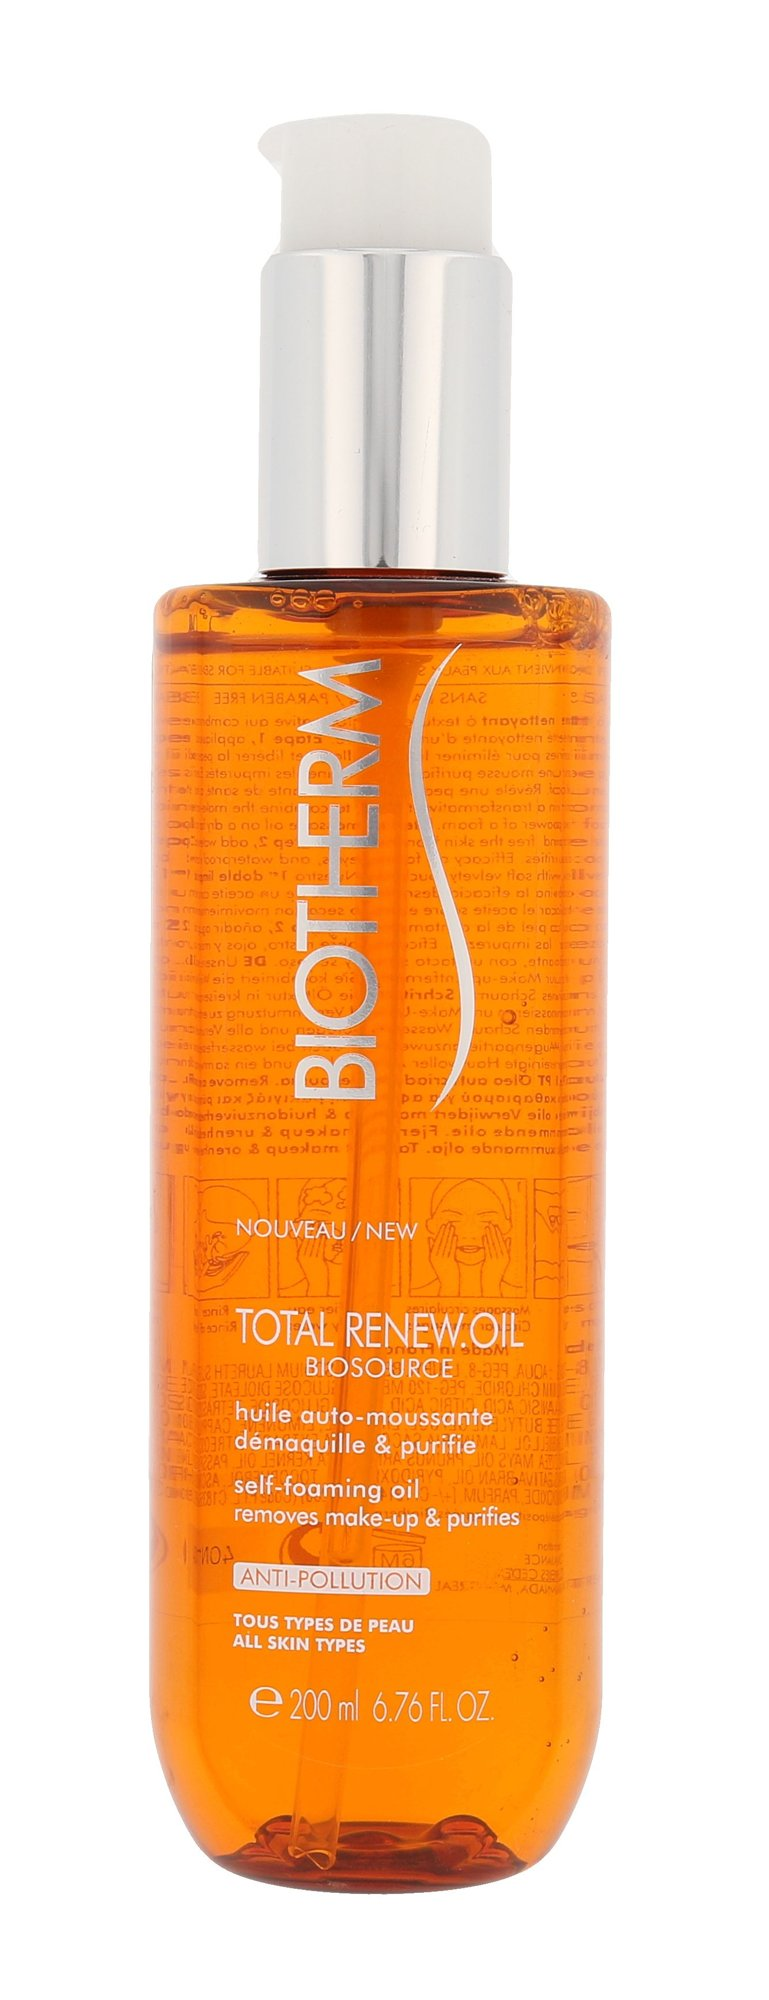 Biotherm Biosource Cleansing Oil 200ml  Total Renew Oil